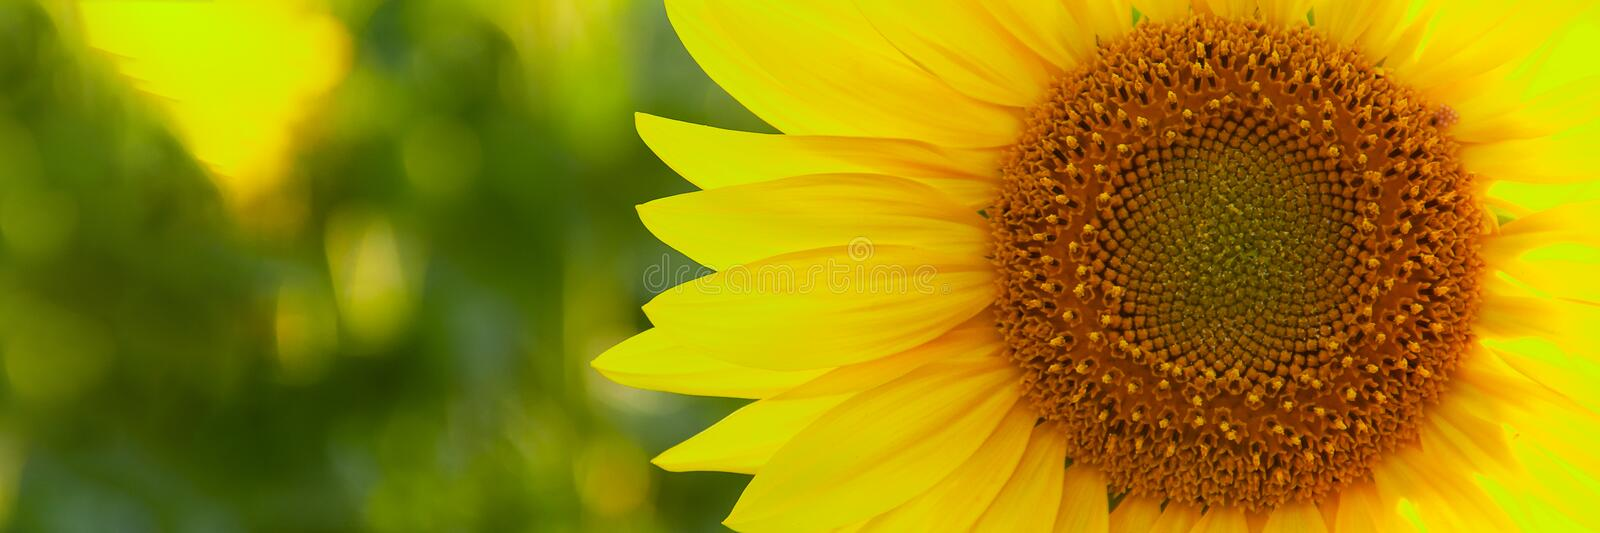 Sunflower natural background. Sunflower blooming. Close-up of sunflower stock images